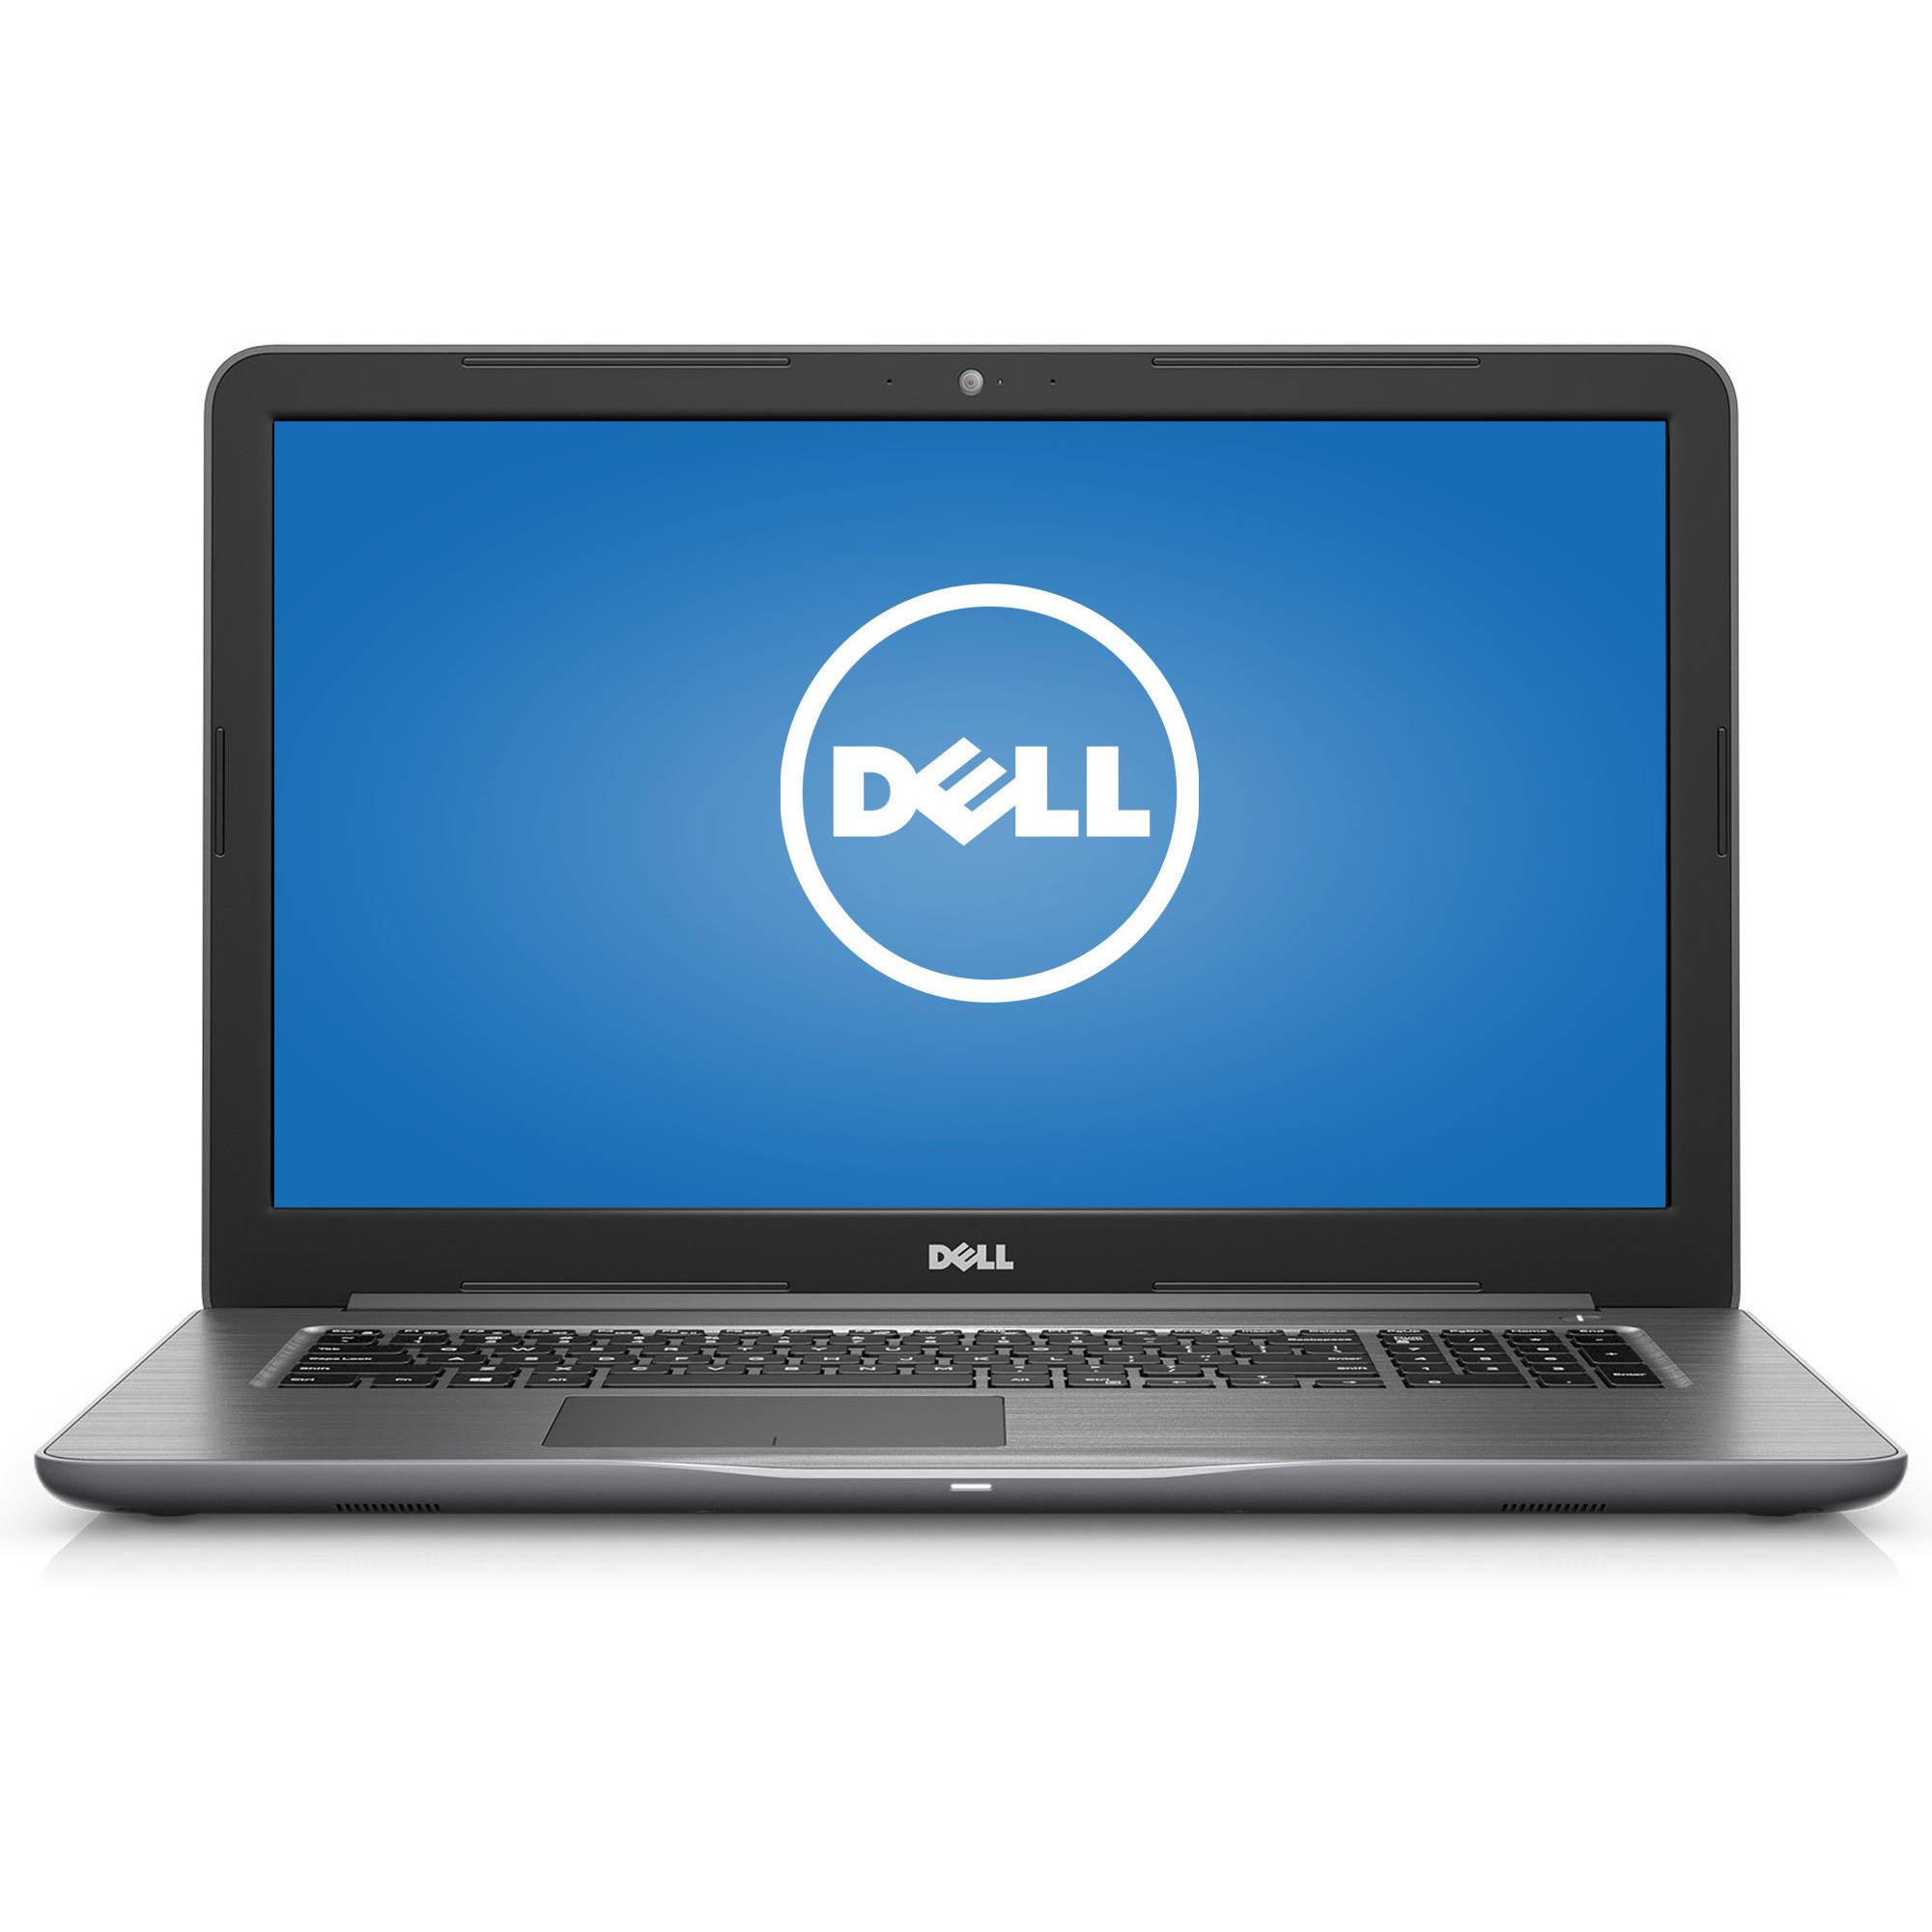 Laptop Screen Replacement For Dell For Sale In Trinidad